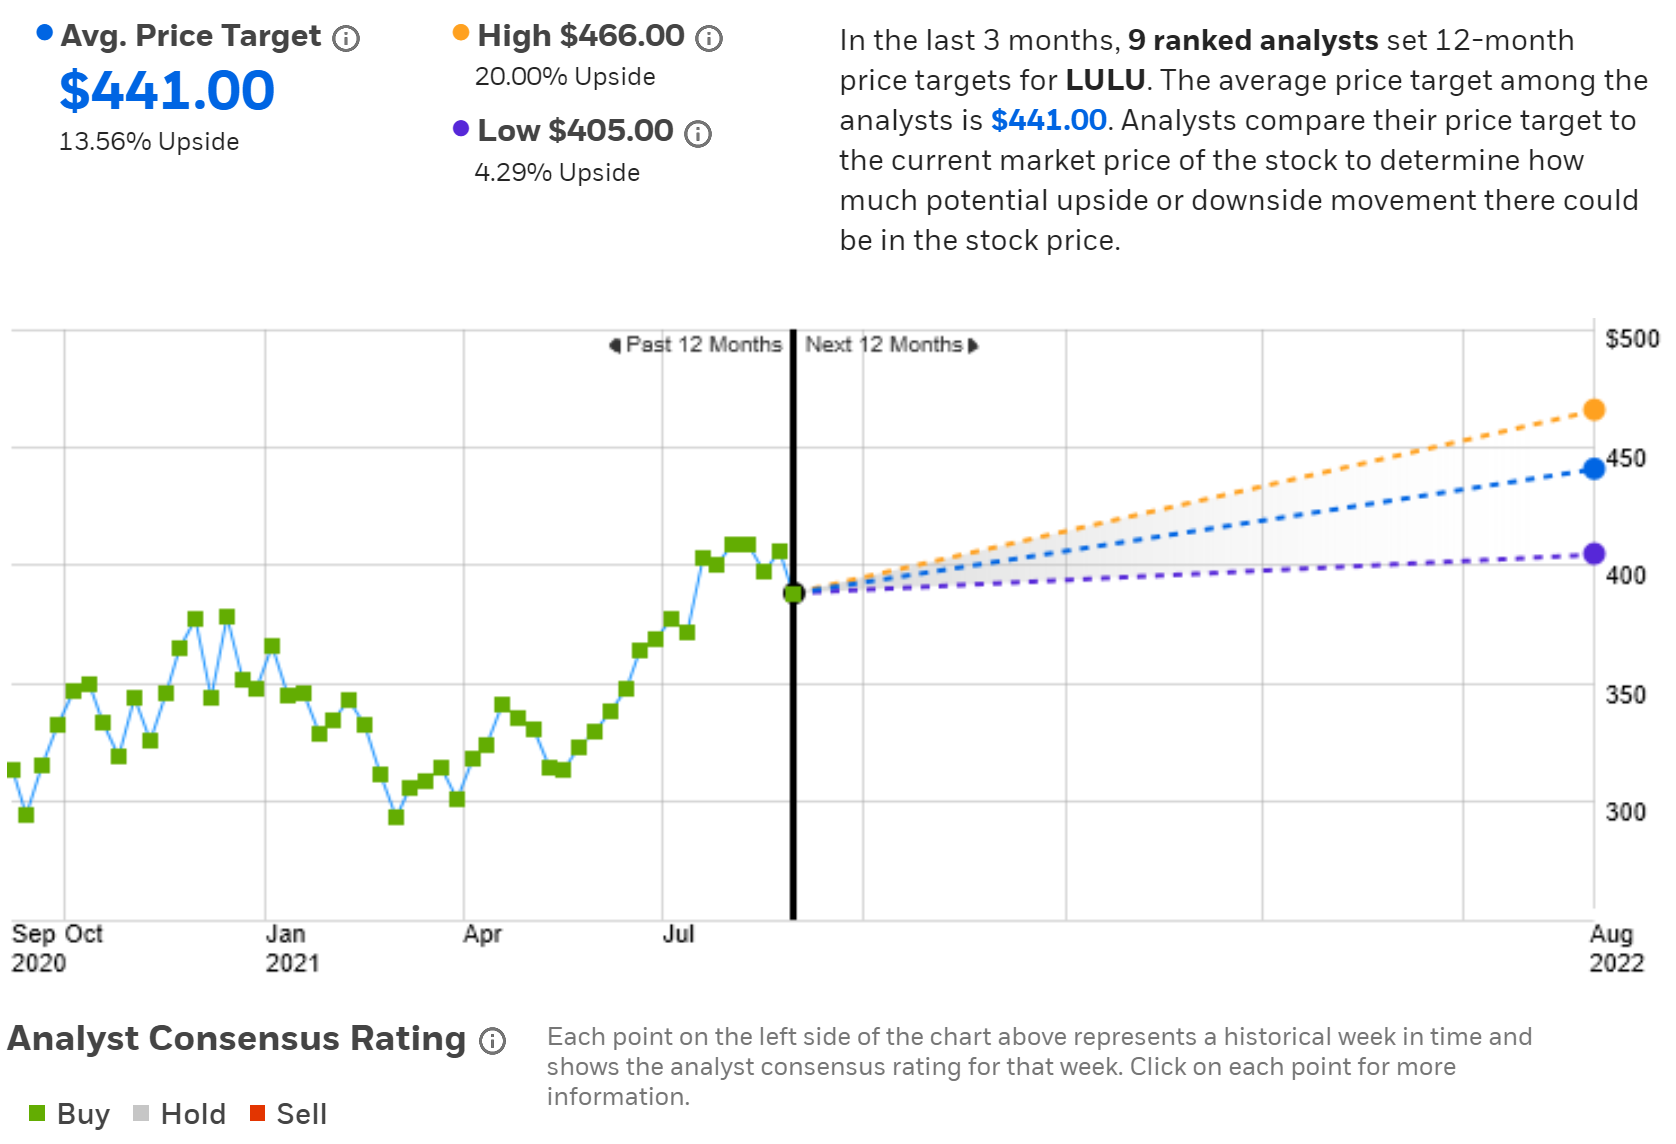 Consensus Outlook And Price Target